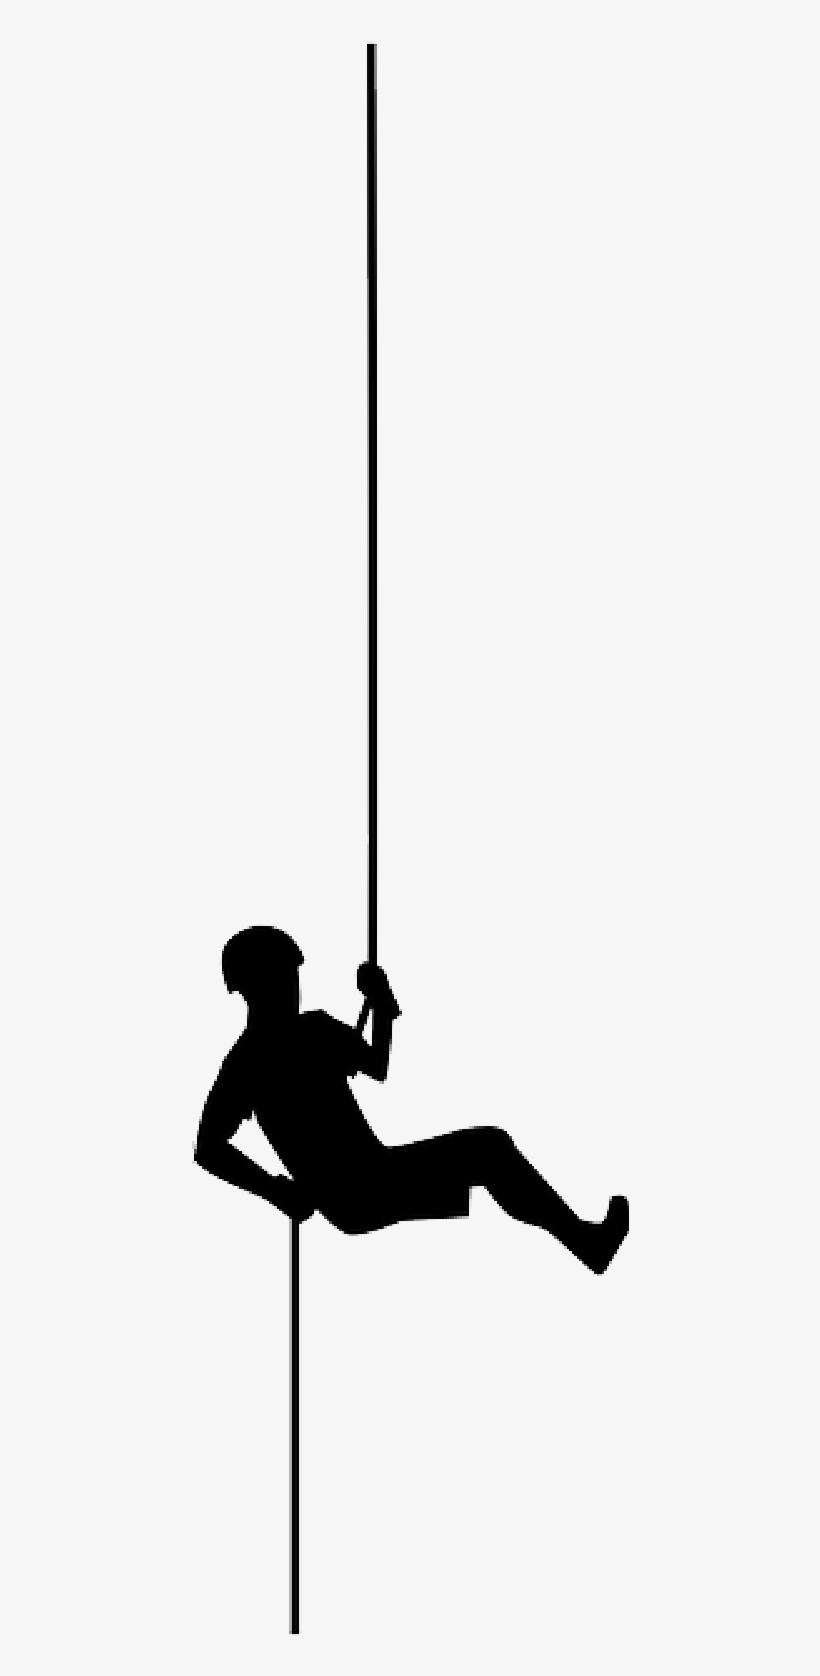 Mb Image/png - Rappelling Silhouette Png, transparent png #431526